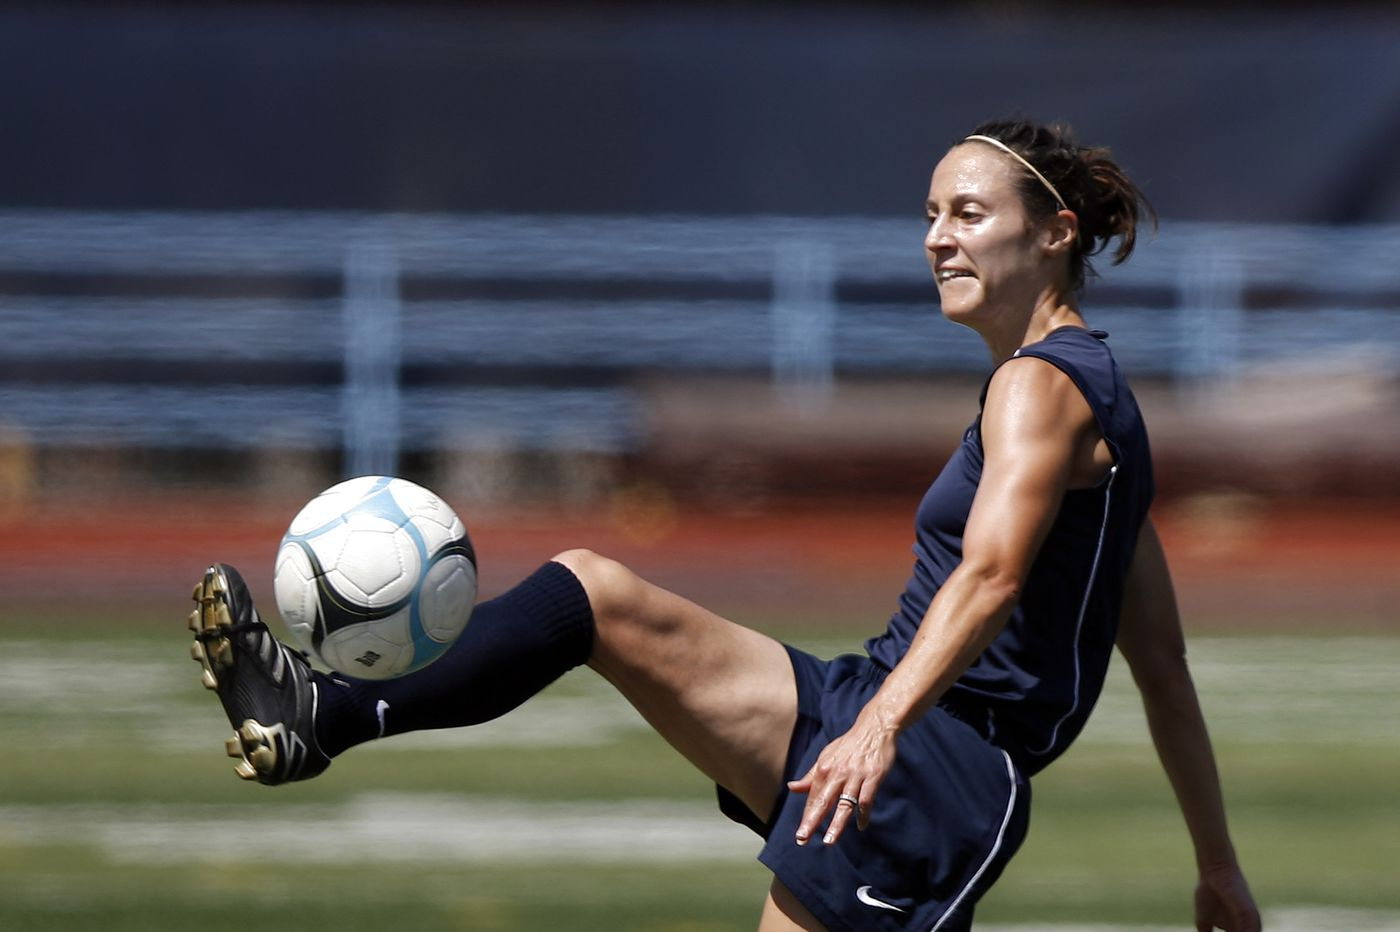 1999 World Cup star hired as general manager for U.S. women's soccer team